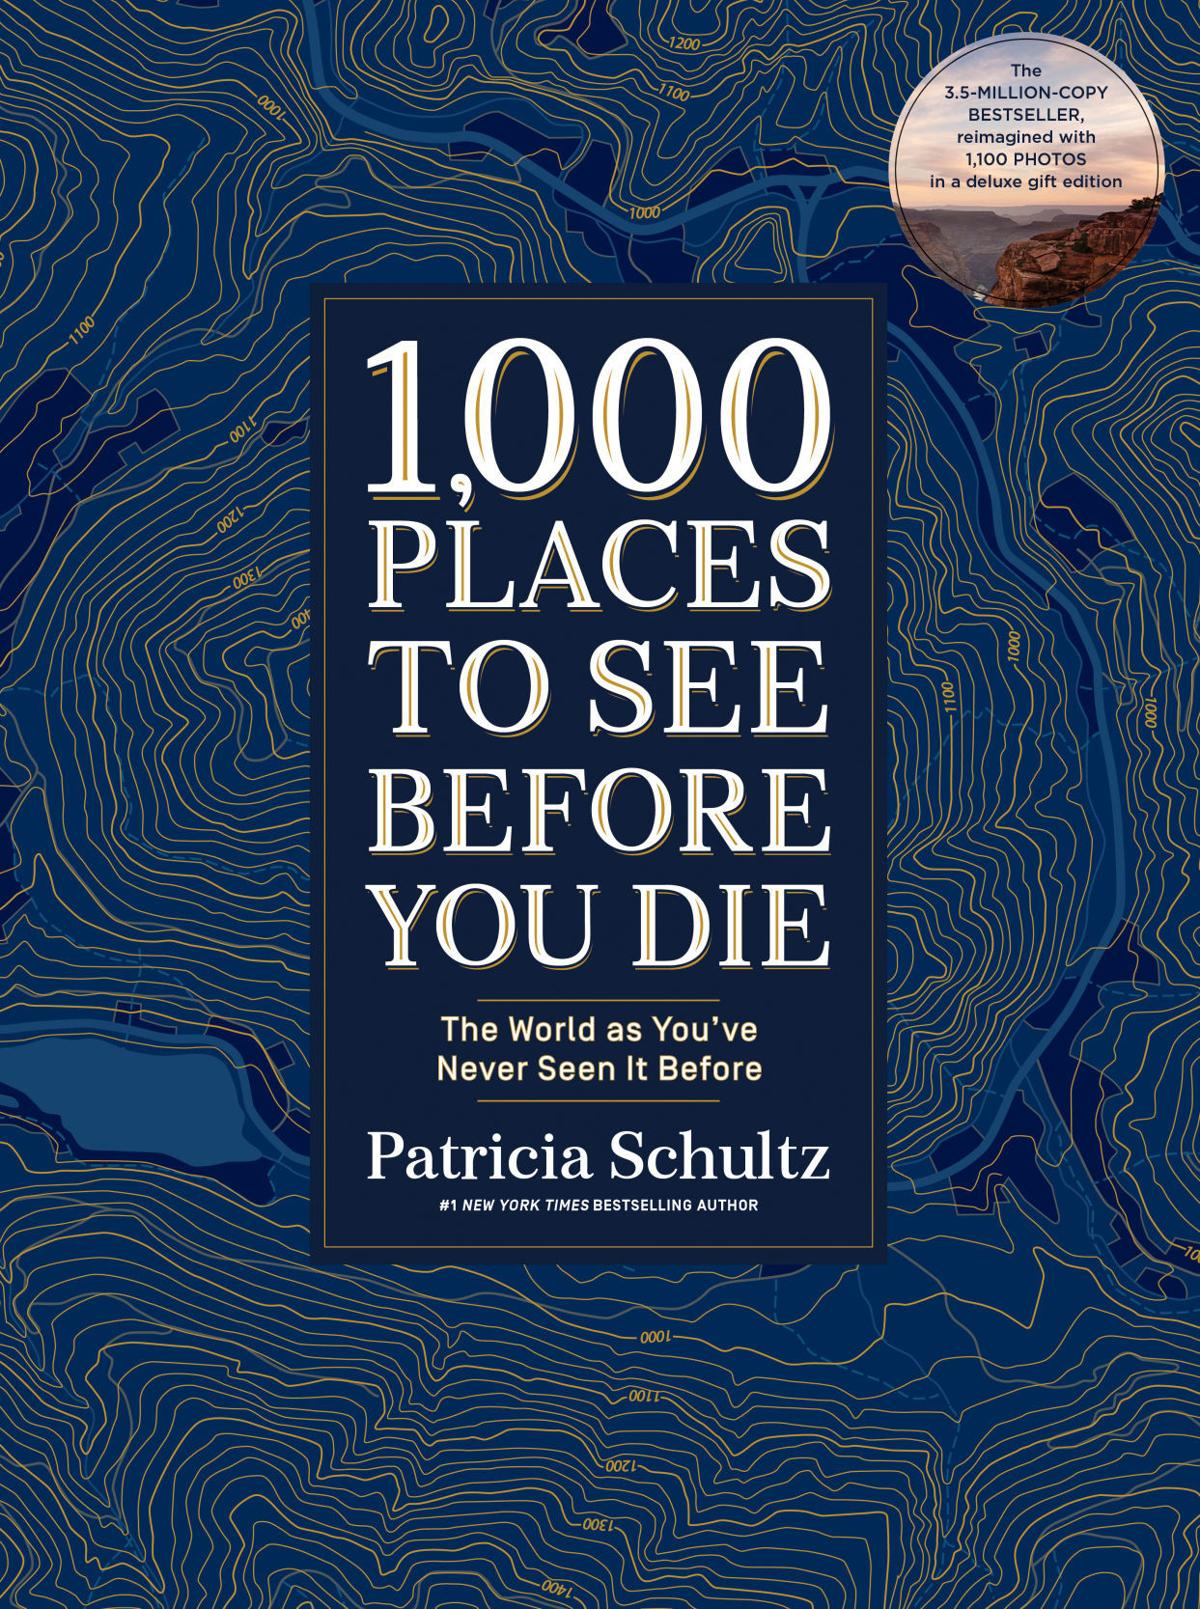 COVER. 1,000 Places to See Before You Die